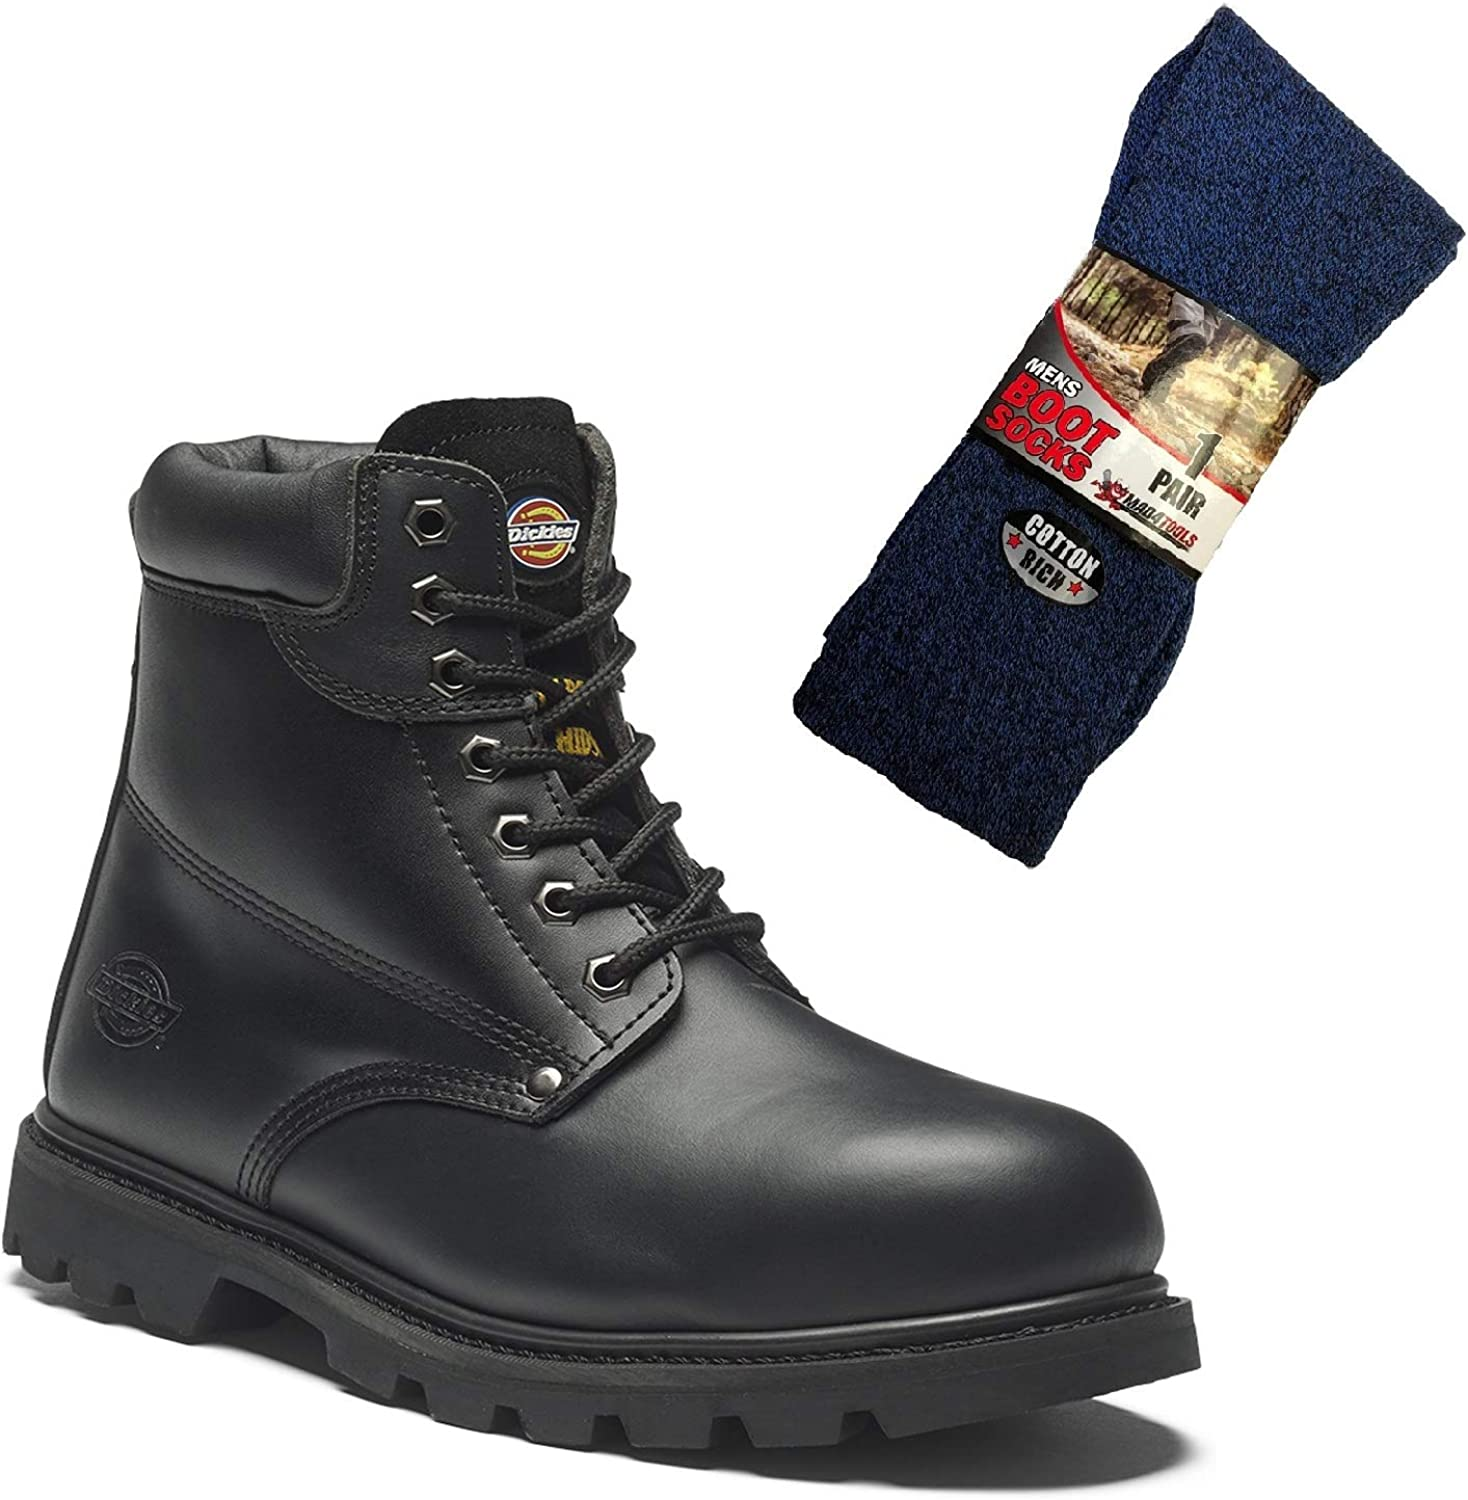 Dickies Cleveland Safety Work Boots and Boot Socks